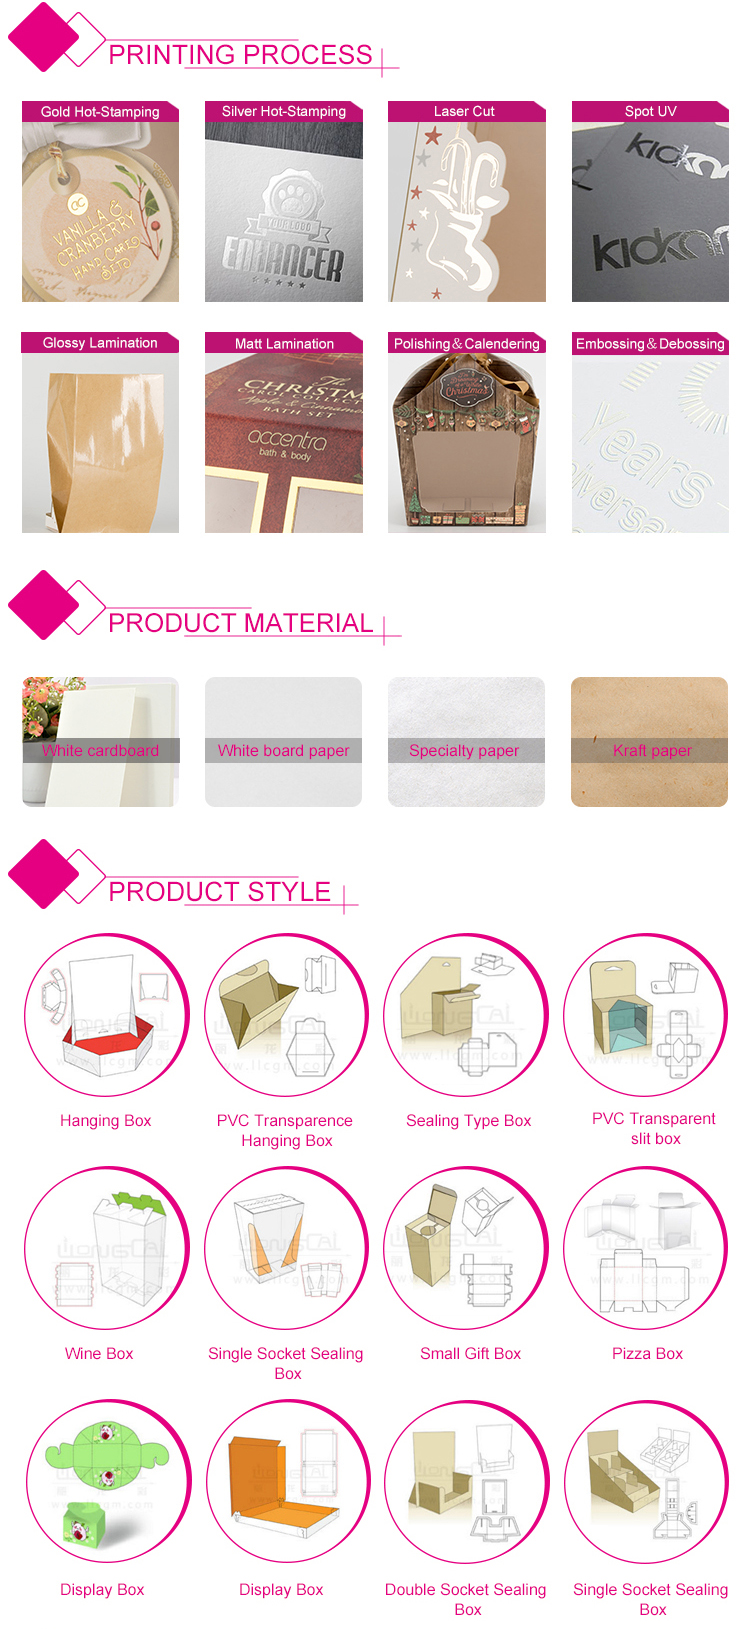 Yellow printing rectangle cardboard paper hang tag for garment